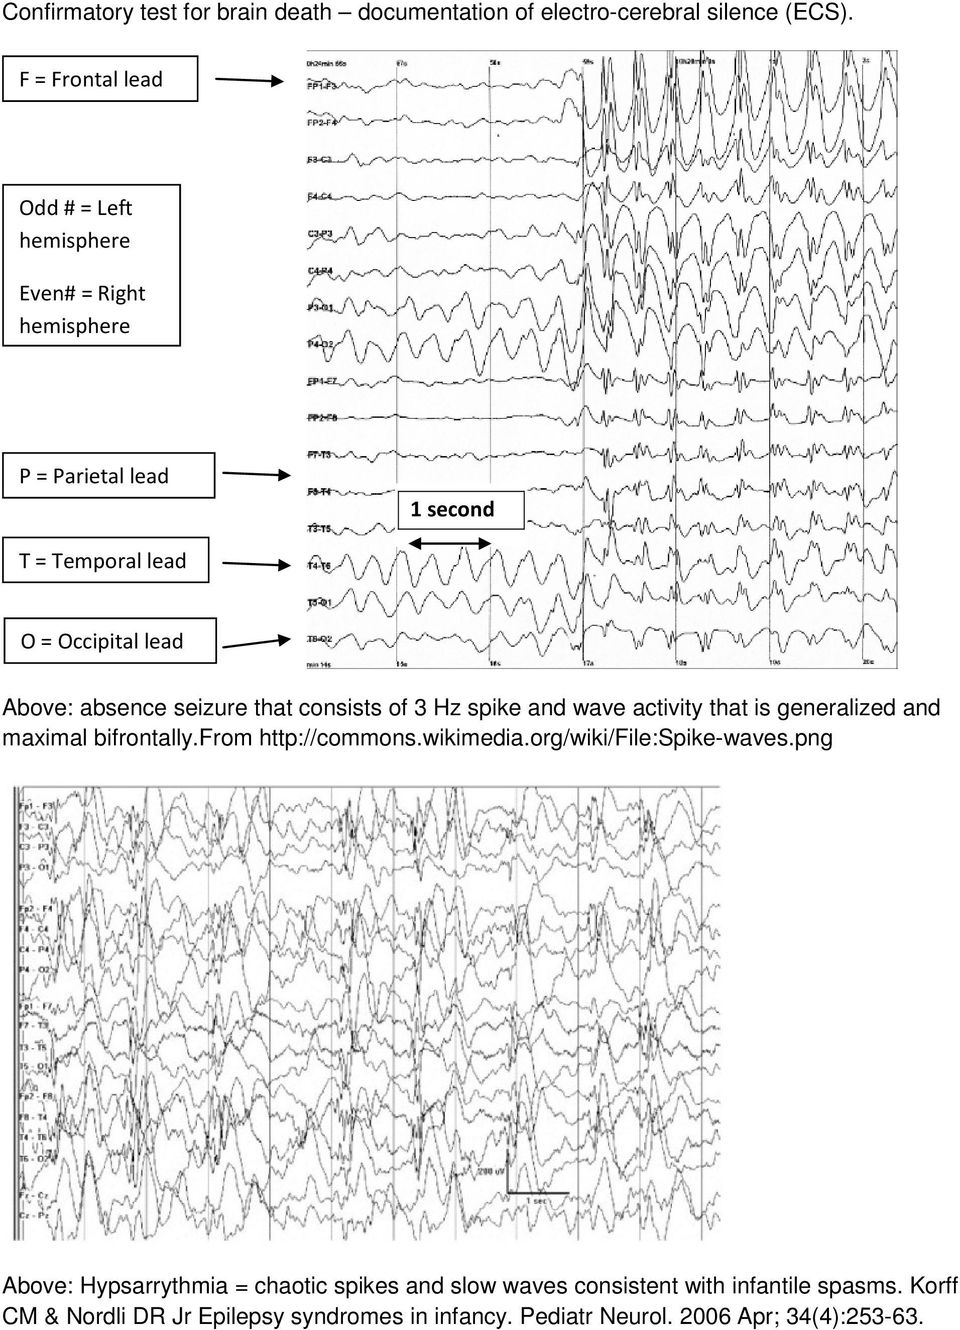 absence seizure that consists of 3 Hz spike and wave activity that is generalized and maximal bifrontally.from http://commons.wikimedia.